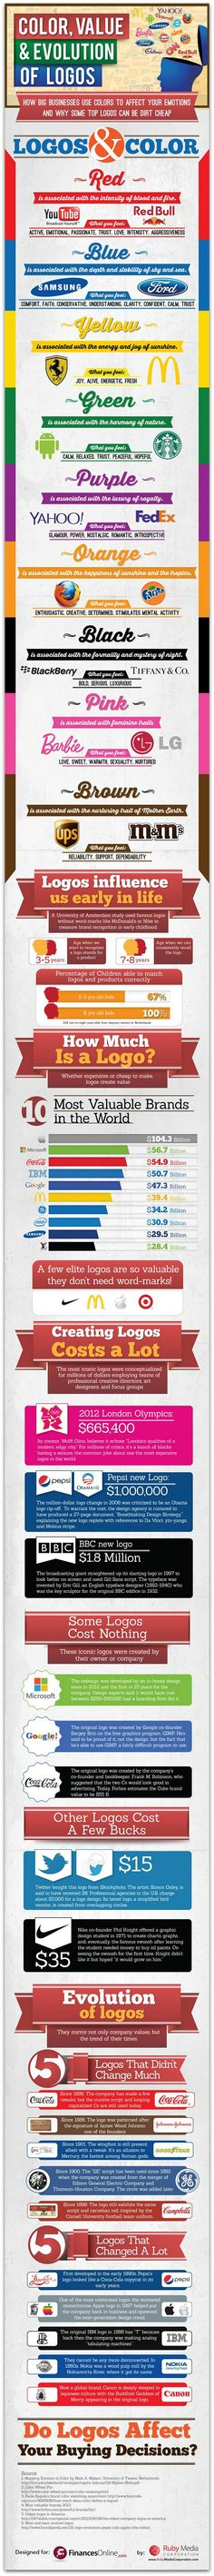 The cost of creating a logo